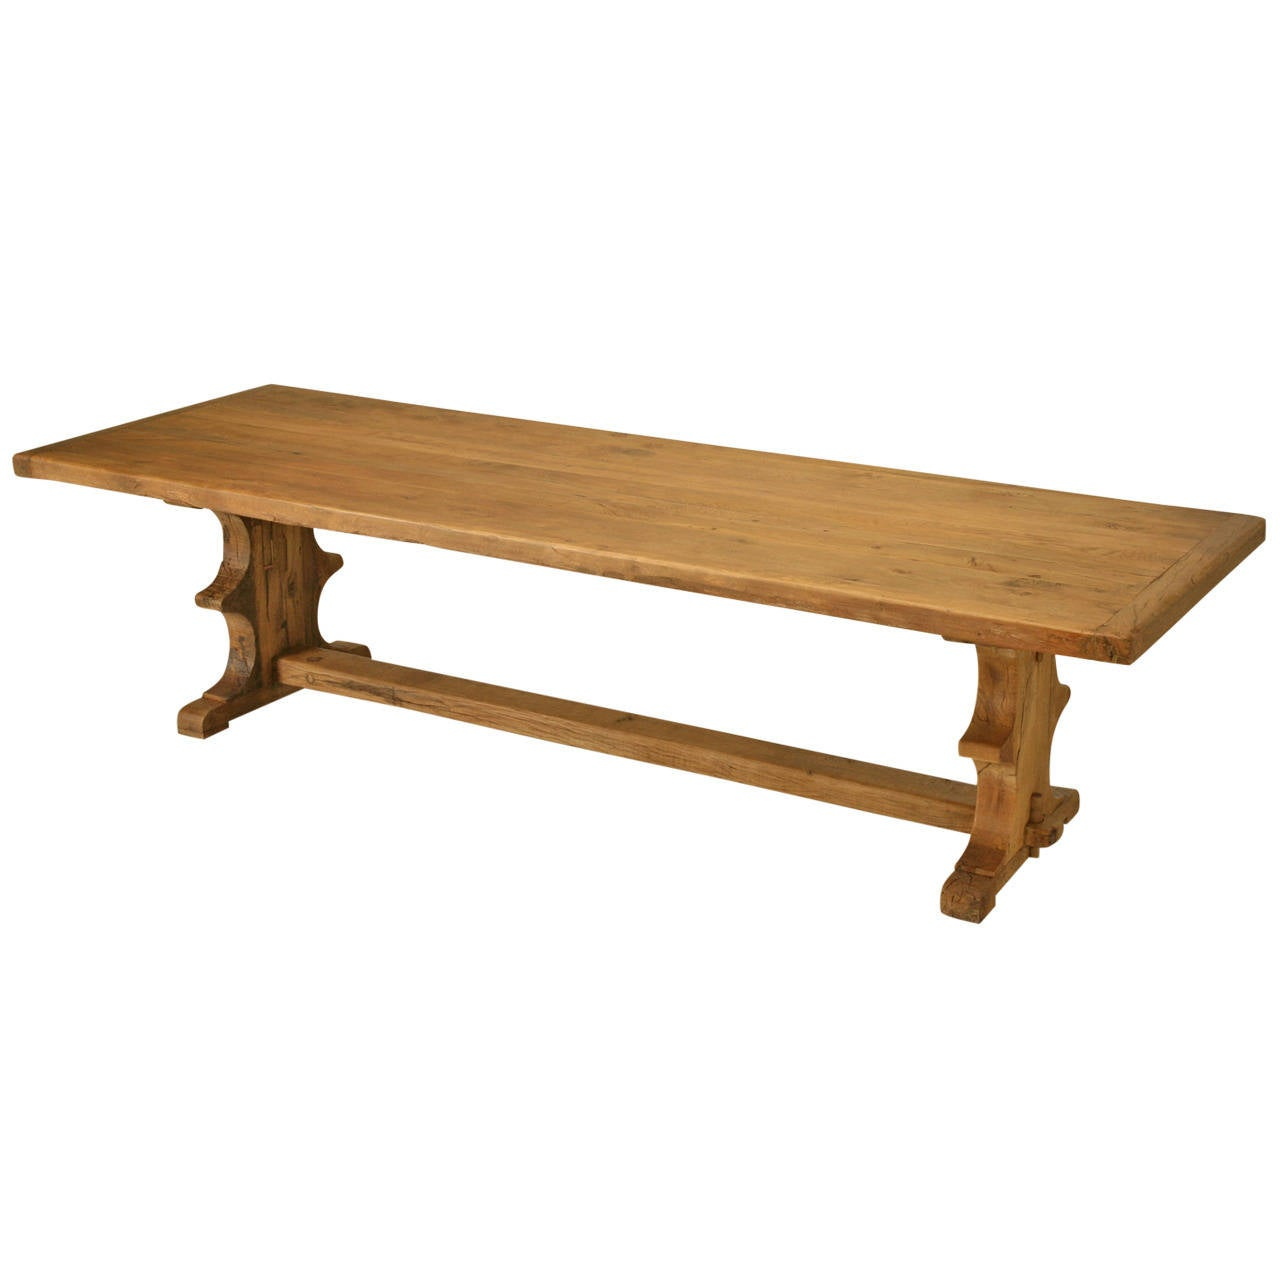 Antique french white oak trestle dining table at 1stdibs - Antique french dining tables ...